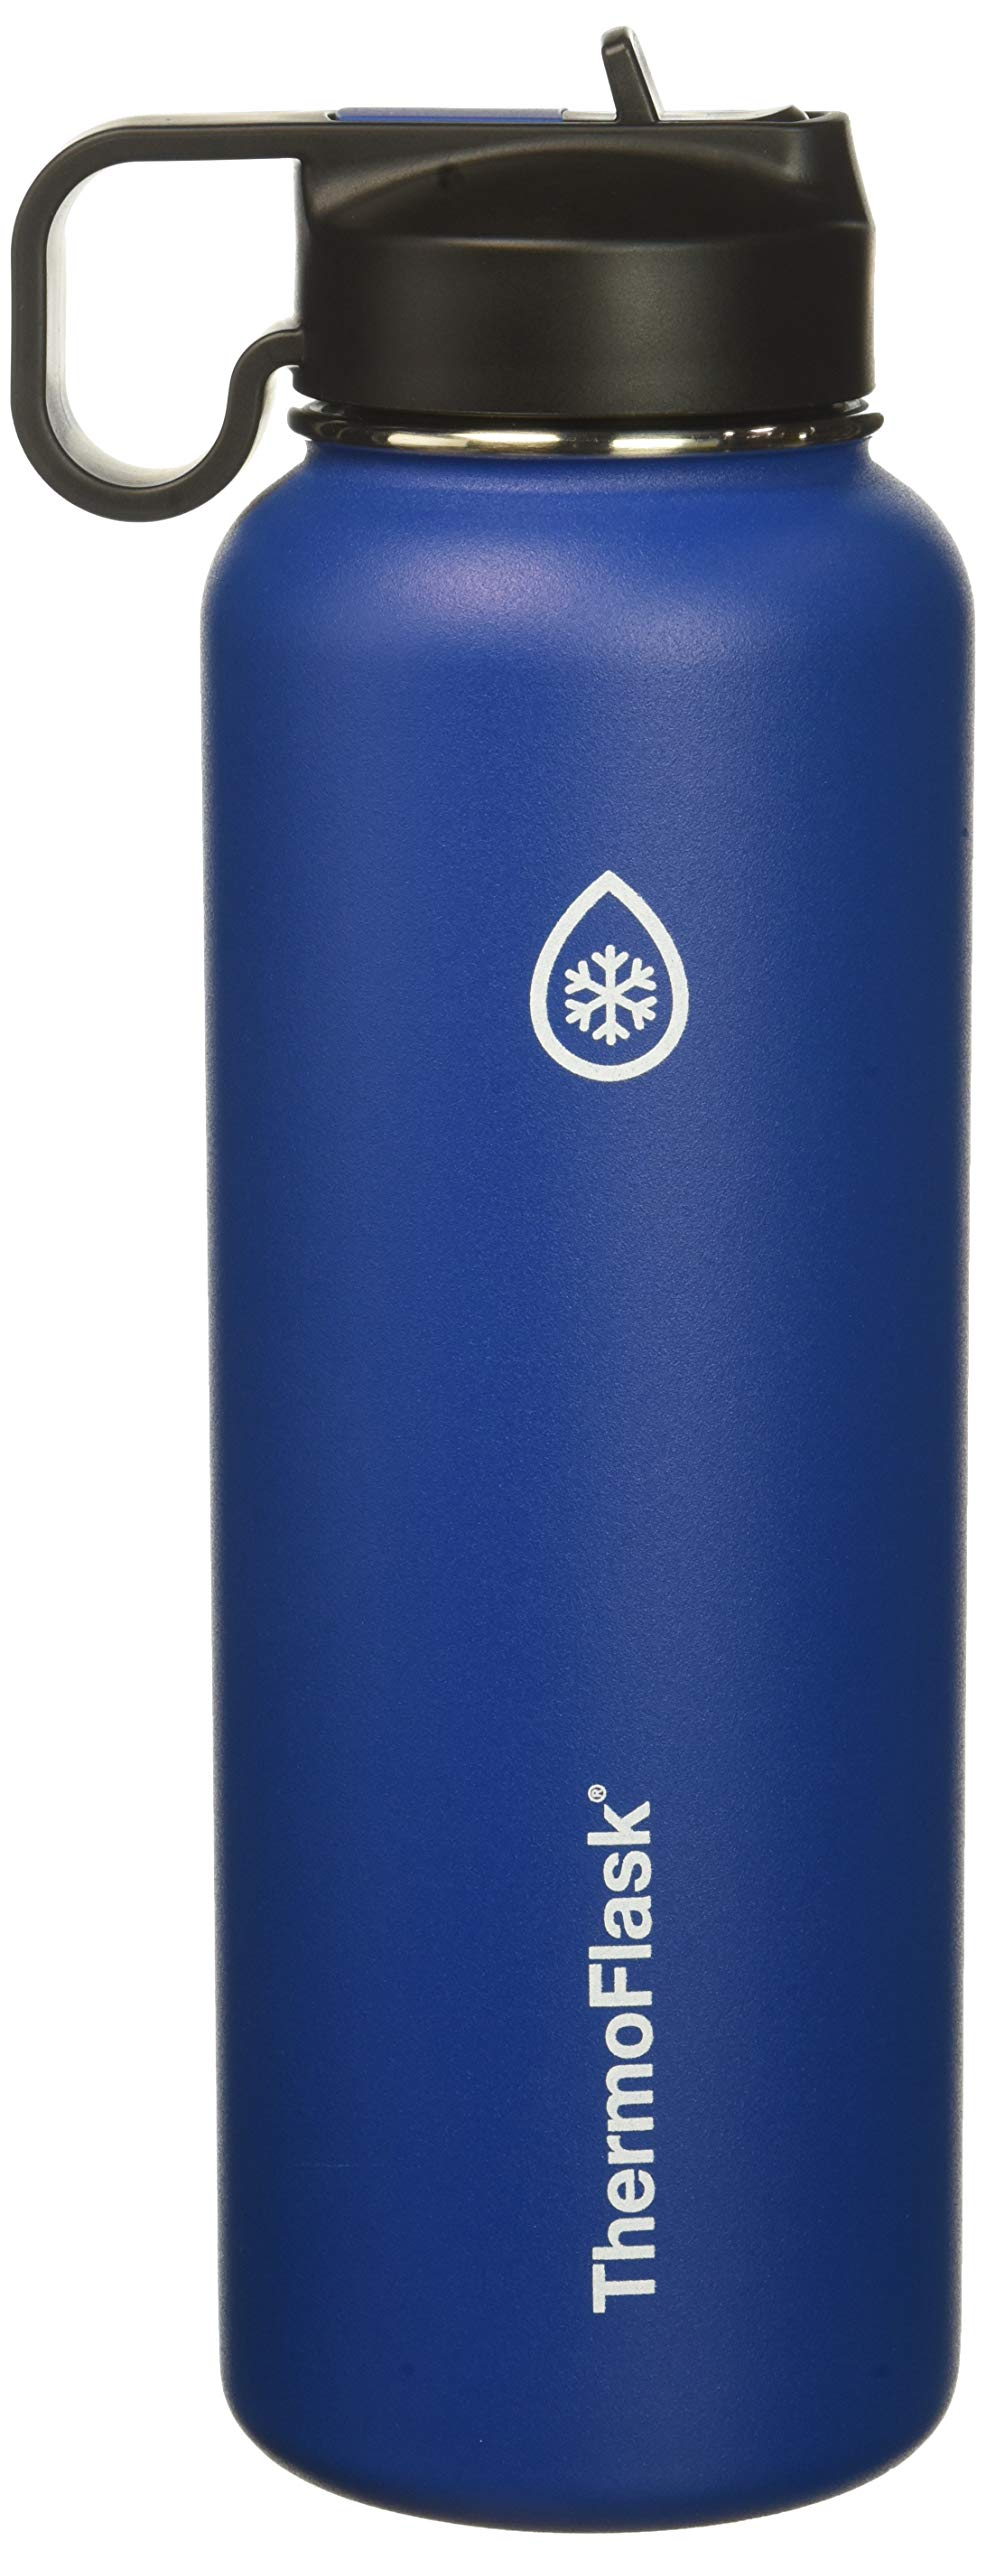 Thermoflask 50064 Bottle with Chug and Straw Lid, 40oz, Cobalt